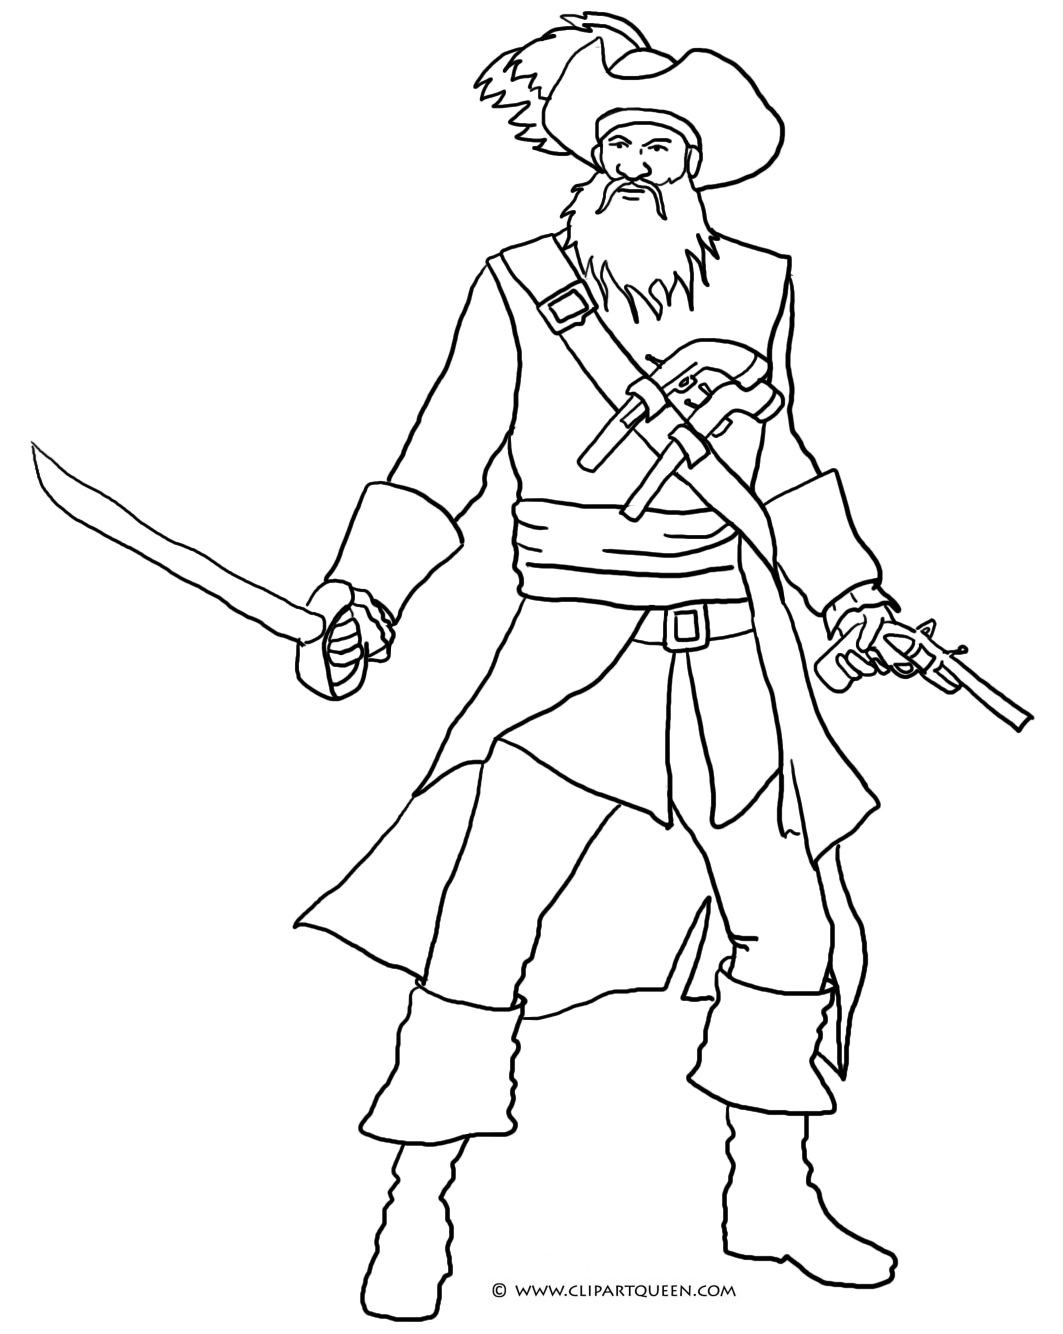 irate coloring pages - photo#20